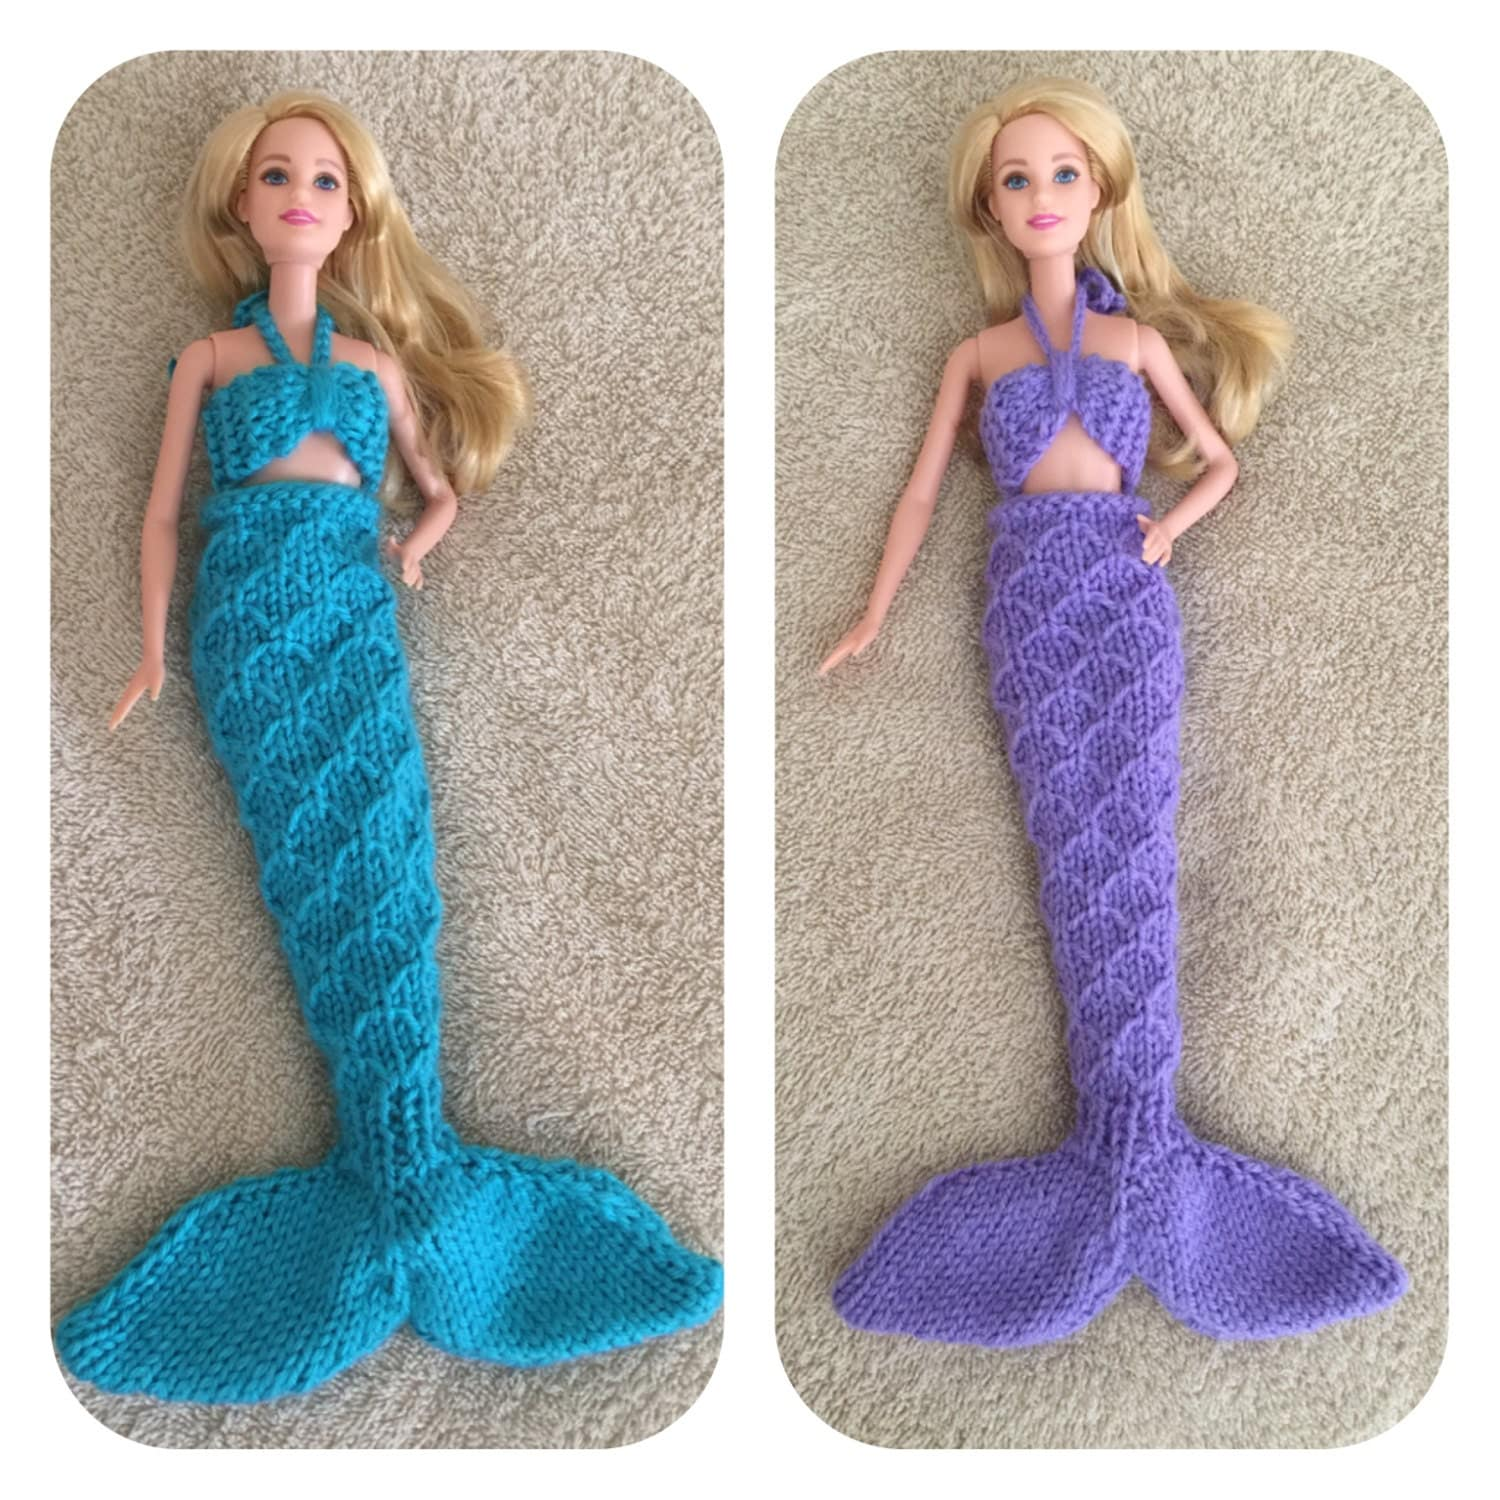 Barbie Knitting Patterns To Download : Barbie Doll Mermaid Knitting Pattern Sure to Please the